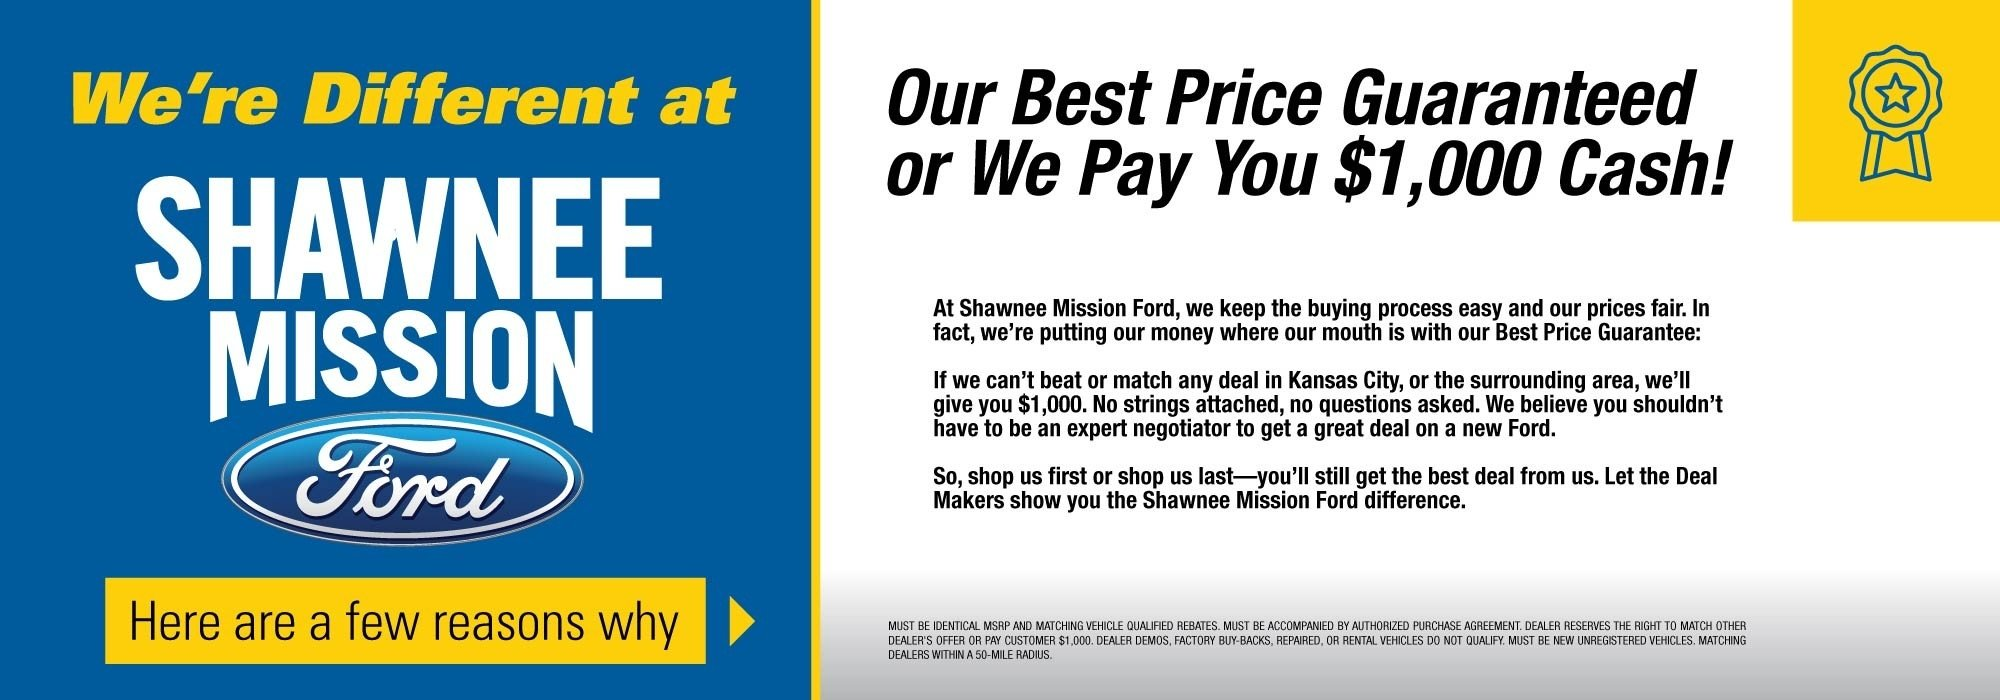 Our Best Price Guarantee